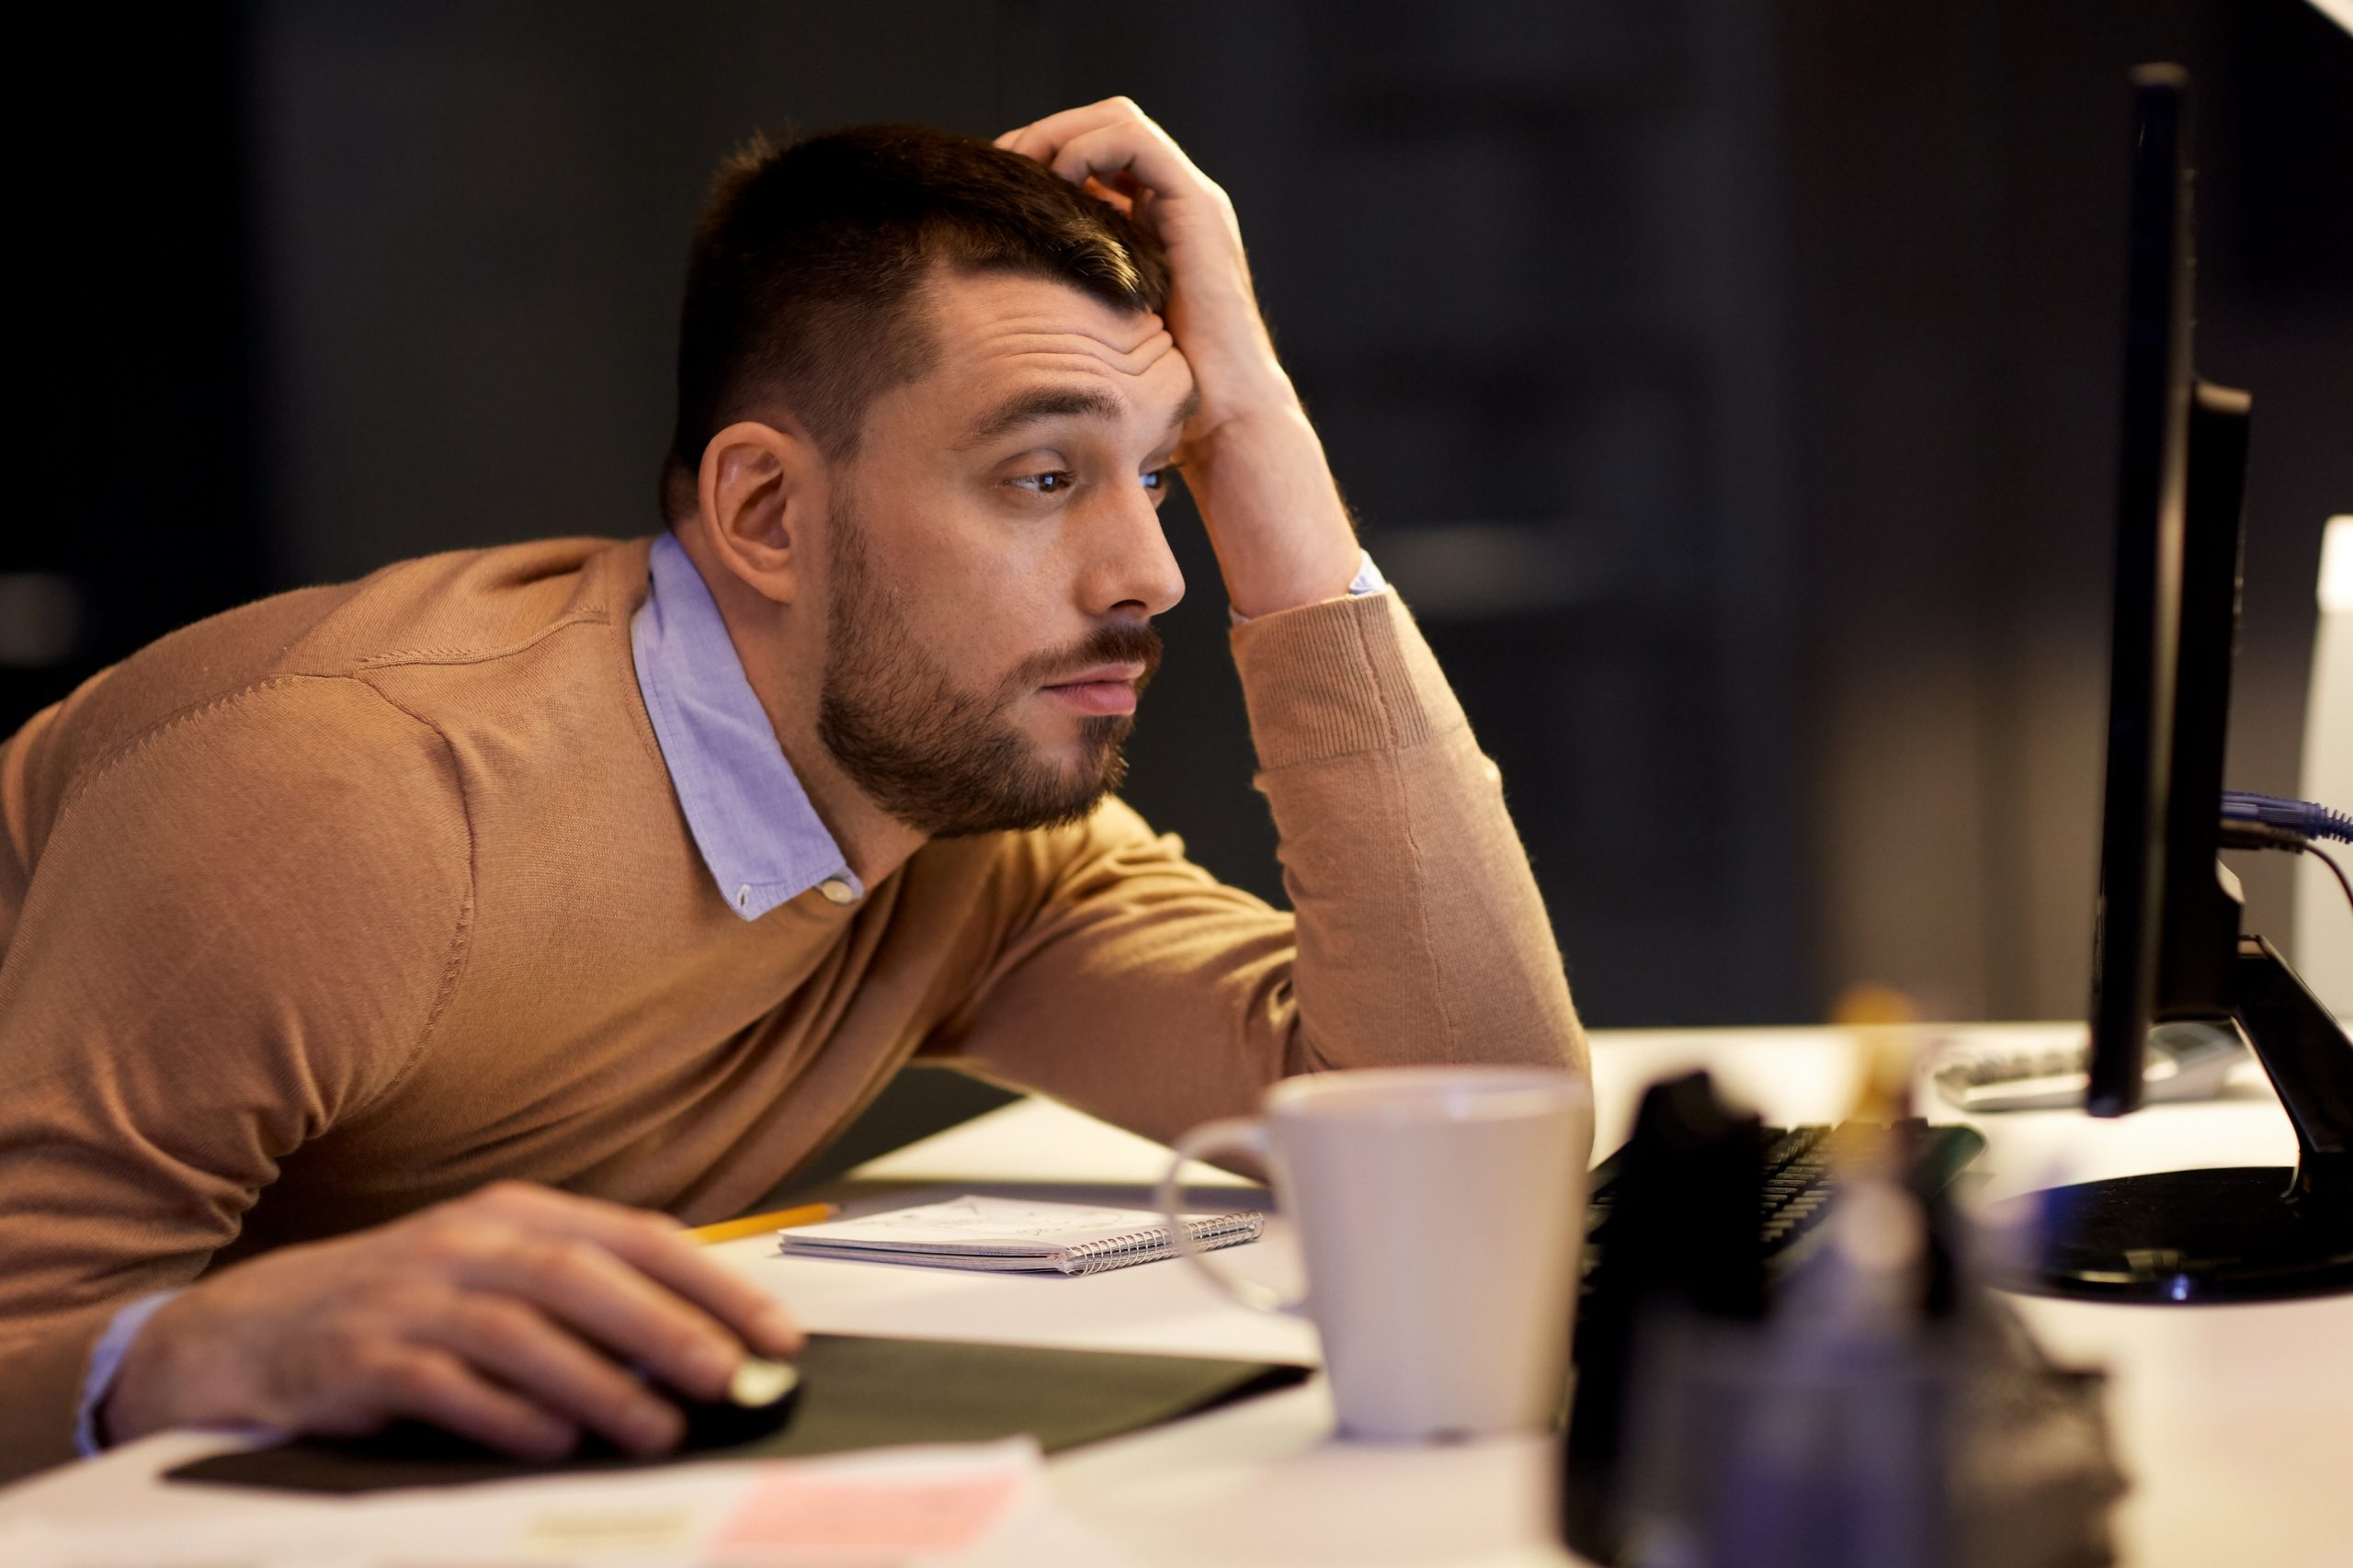 Man suffering from sleep apnea while trying to work on a computer